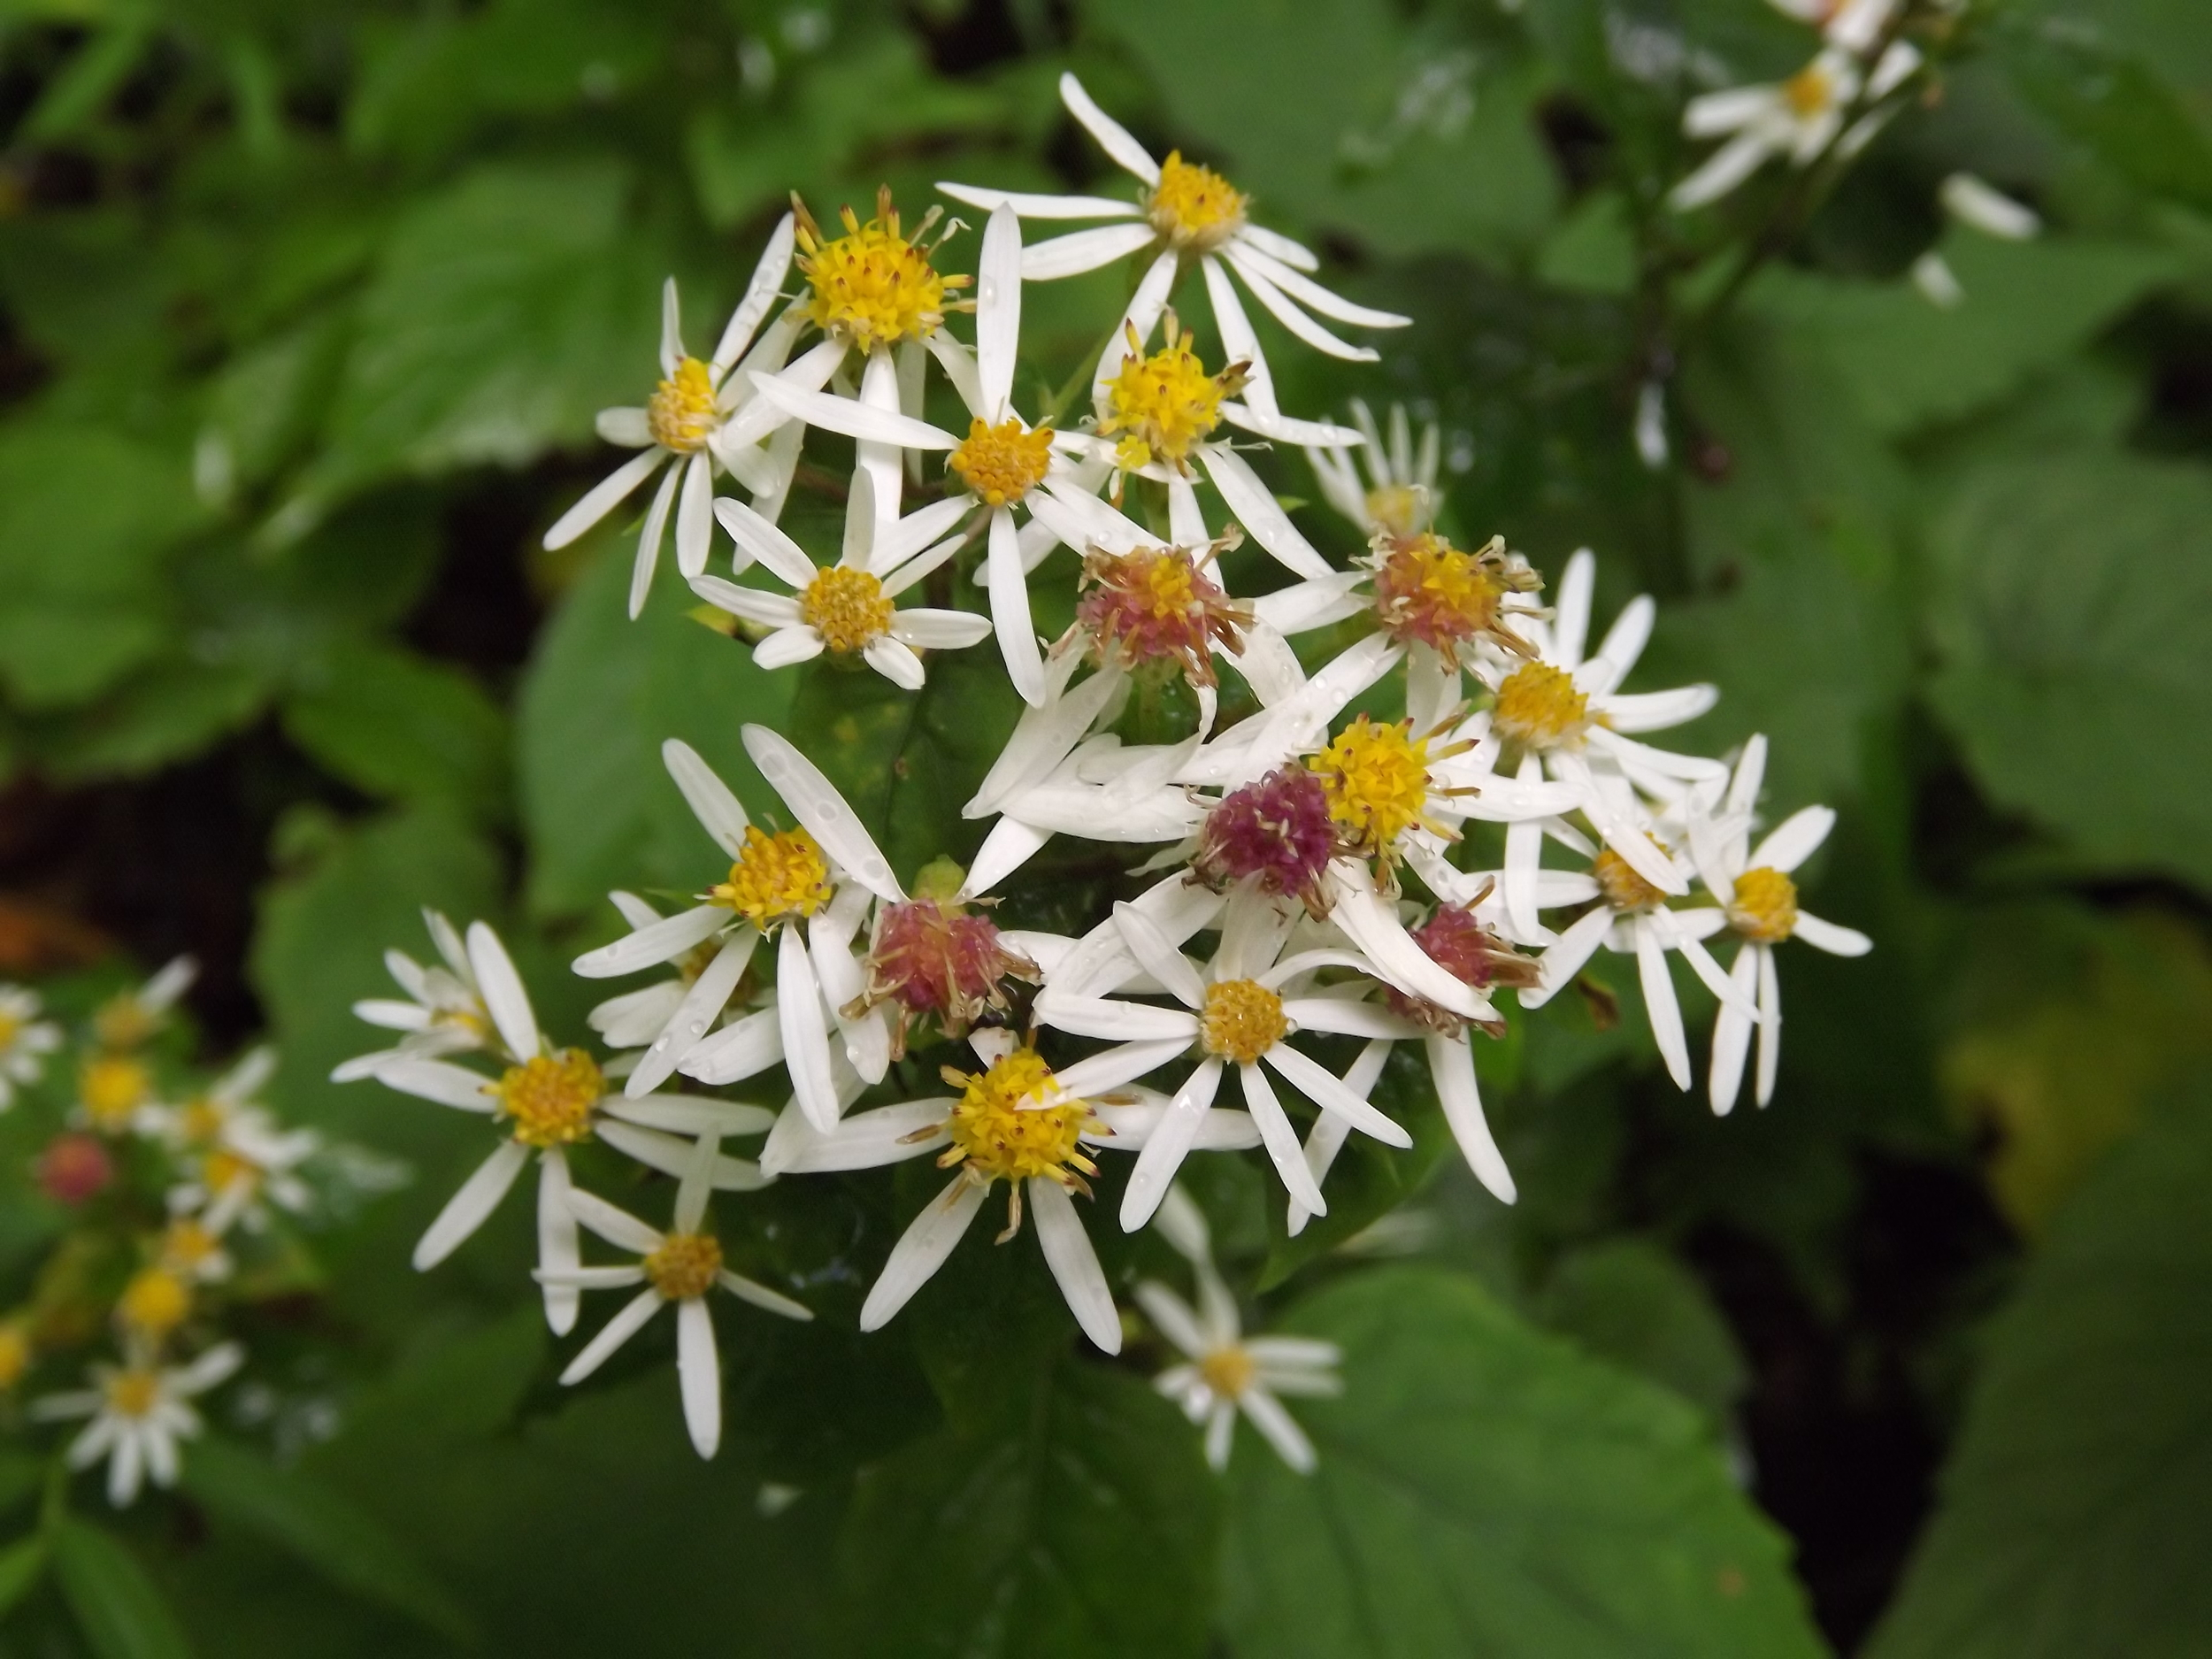 White Wood Aster ( Eurybia divaricata ) - White Wood Aster is a low plant normally around knee height or less.  Its blossoms can be white or lavender with yellow centers; they really are quite beautiful. Our area has a lot of Asters and most, if not all, bloom in the Fall.